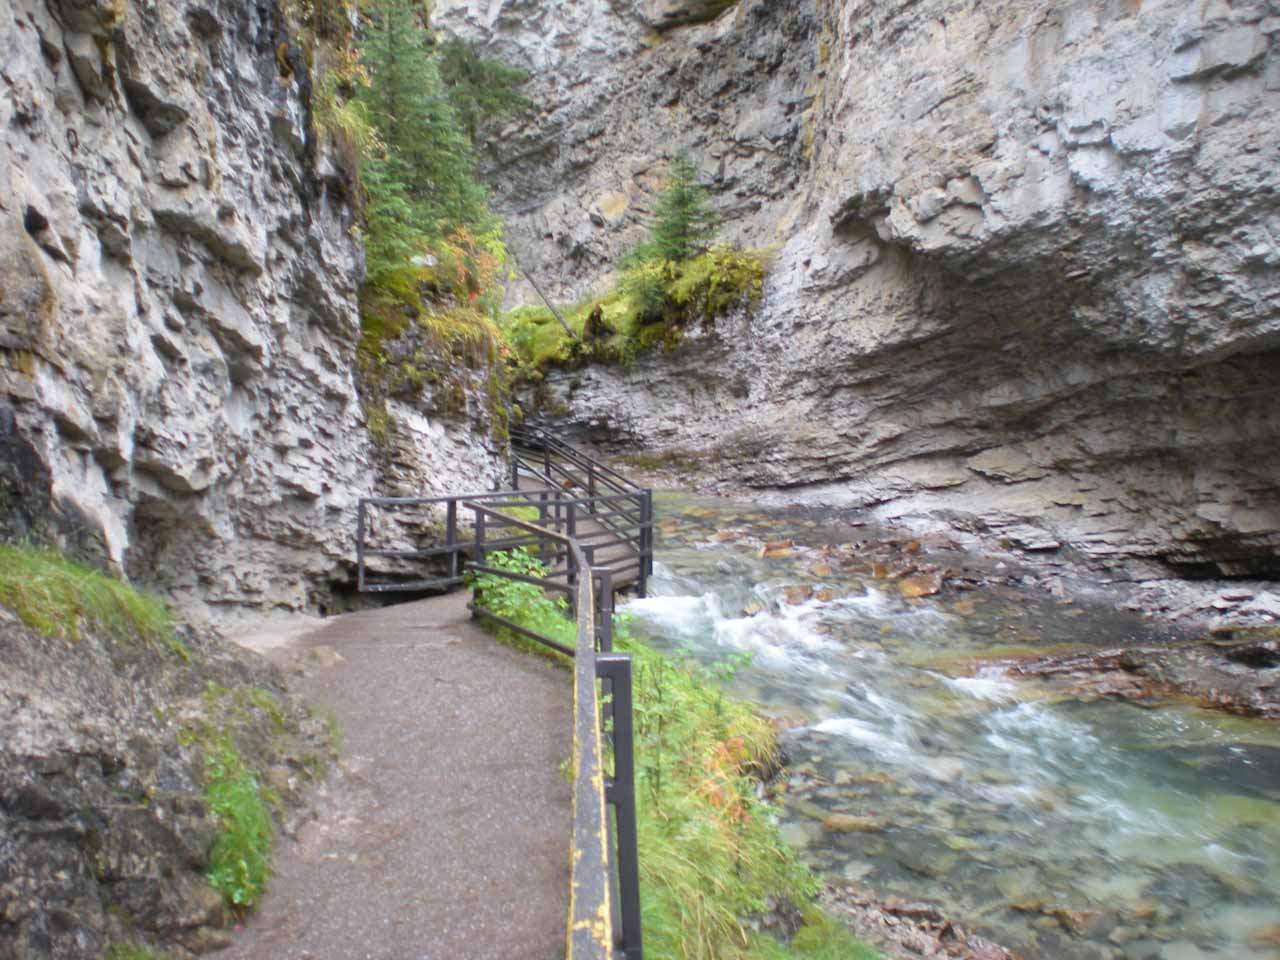 The walkway deep inside the gorge of Johnston Canyon, which itself made for a very atmospheric visit as we were hugging vertical cliffs while seeing gorge scenery both above and below us